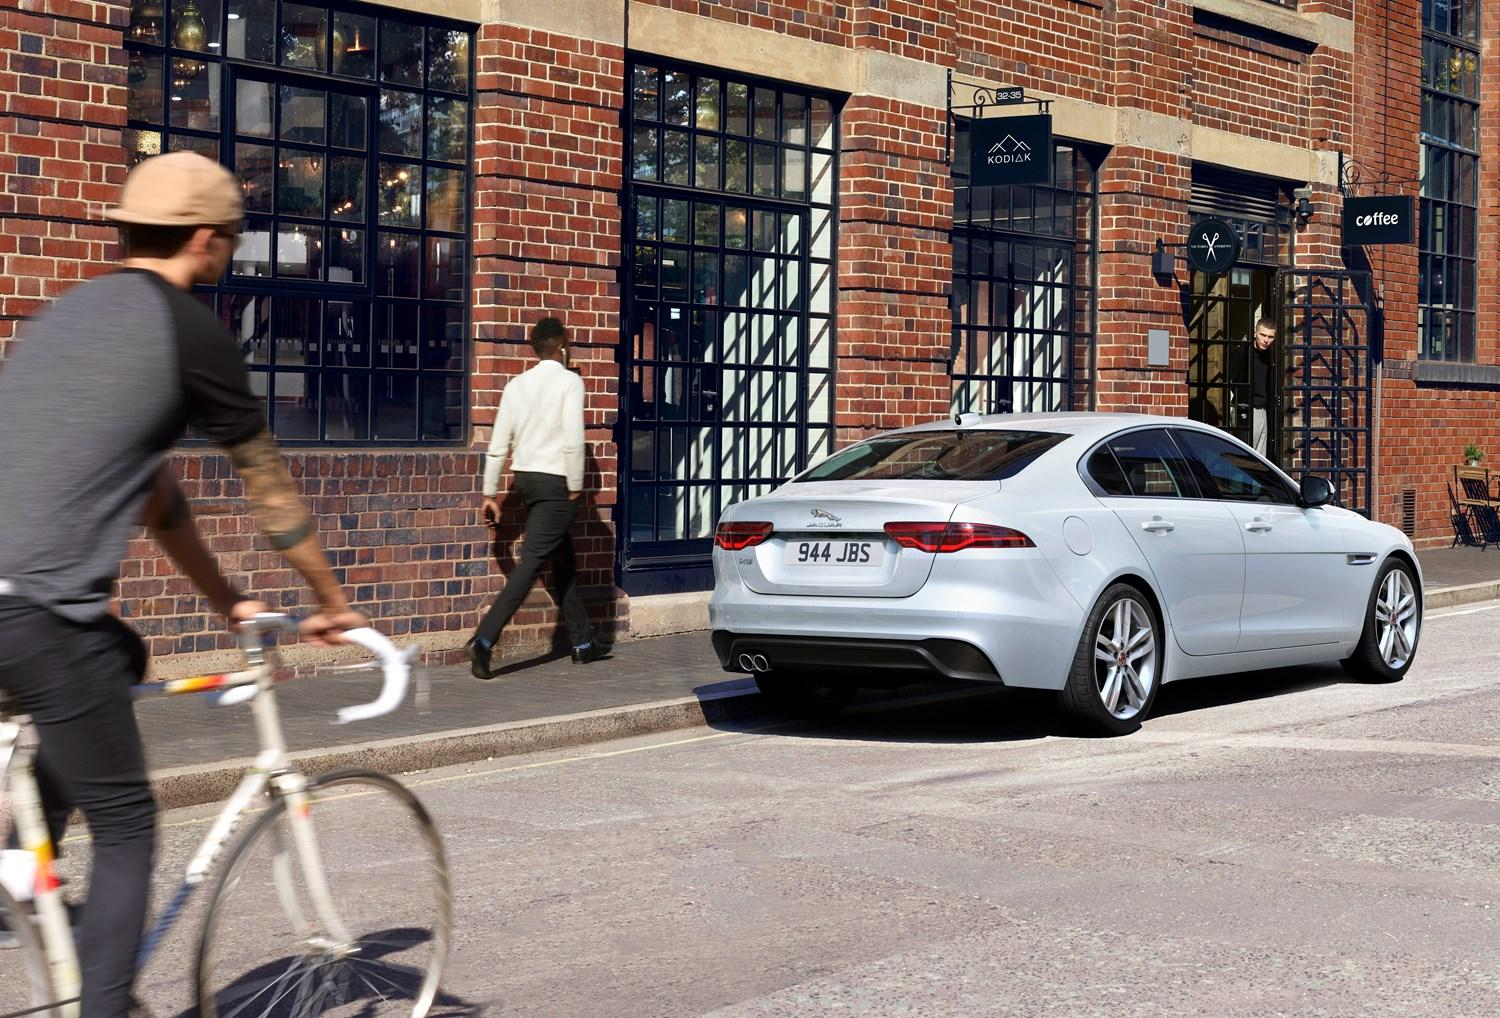 White Jaguar XE packed alongside a kerb facing away. A man wearing a grey top, dark grey trousers and brown hat cycles a white bike along the road. The background is a brick building with multiple dark framed windows and a black shop sign. A man walks along the pavement